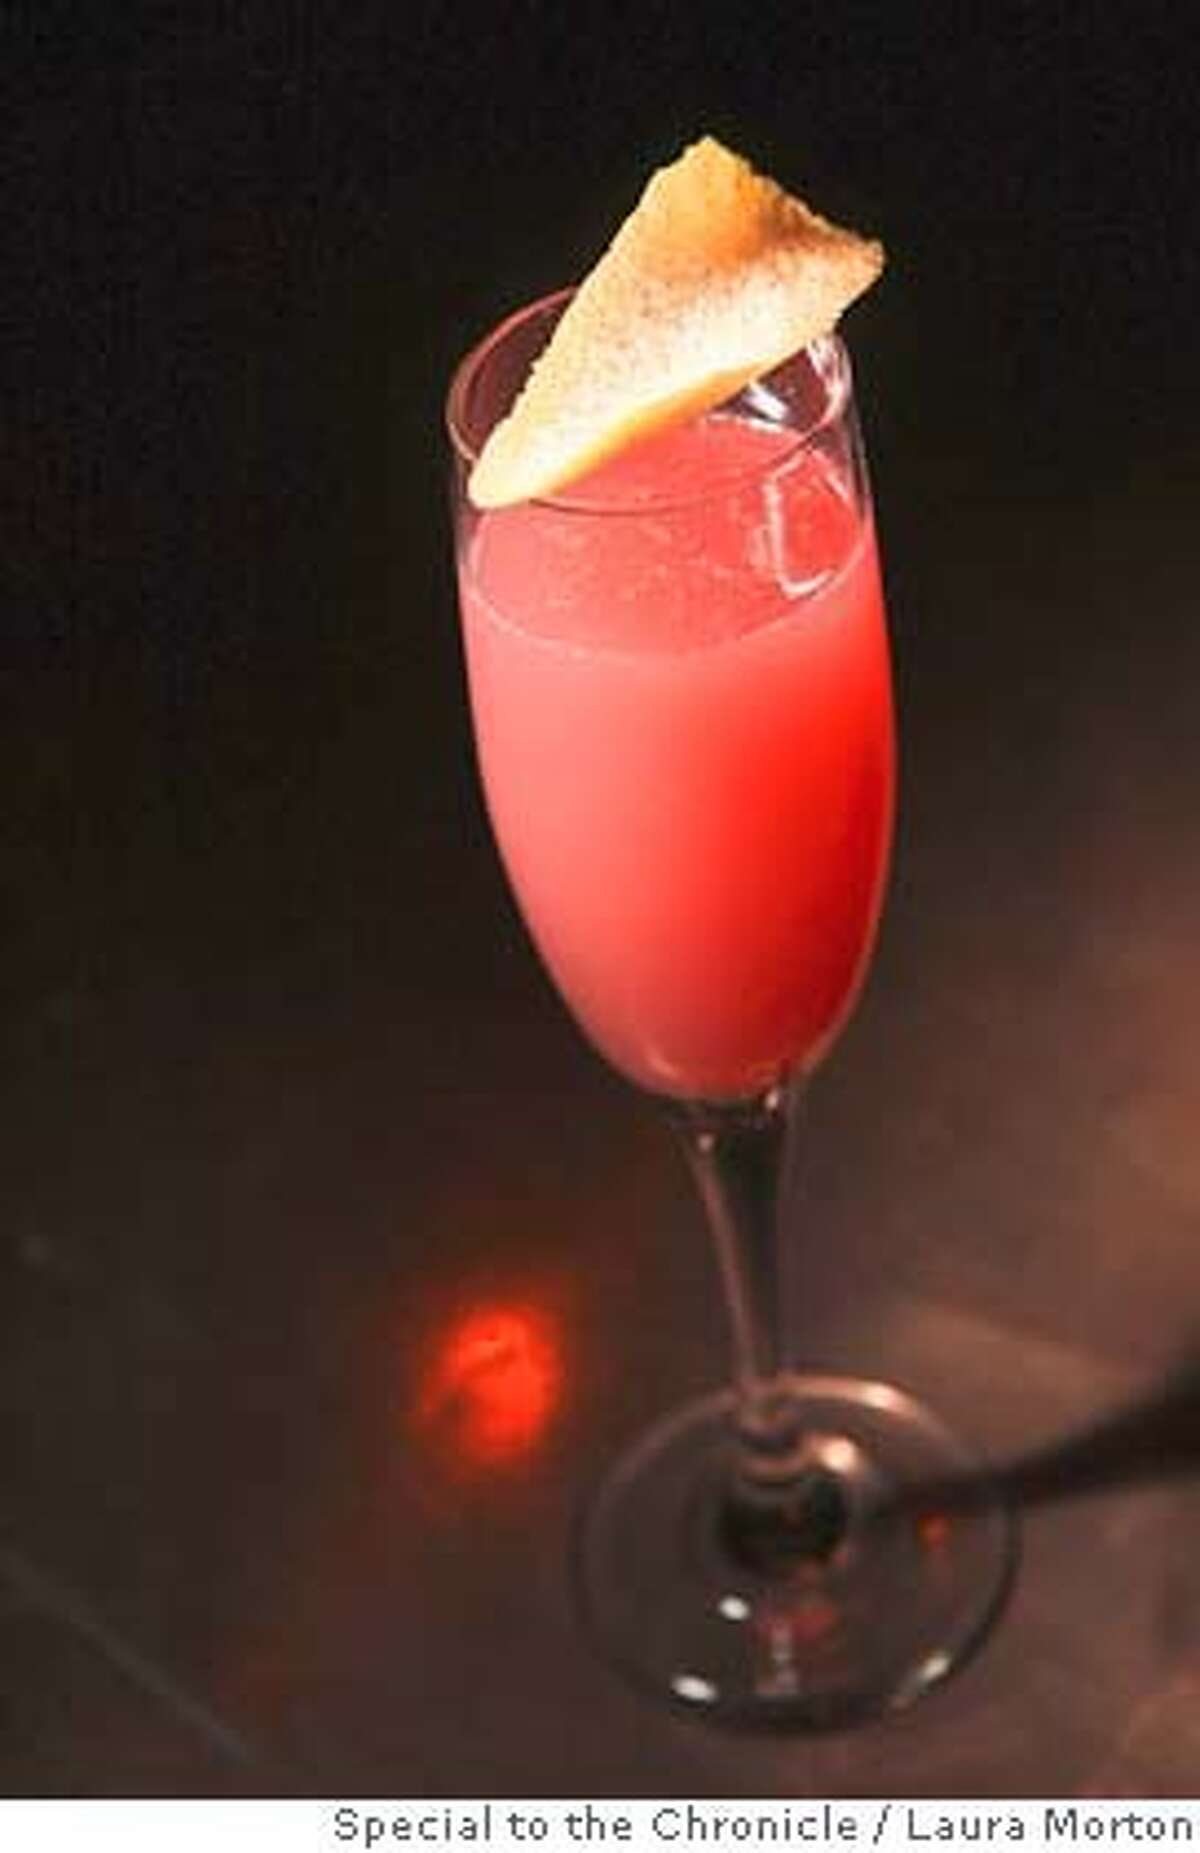 The Grapefruit Royale, a cocktail at Brick, a cozy restaurant and bar in San Francisco. (Laura Morton/Special to the Chronicle)